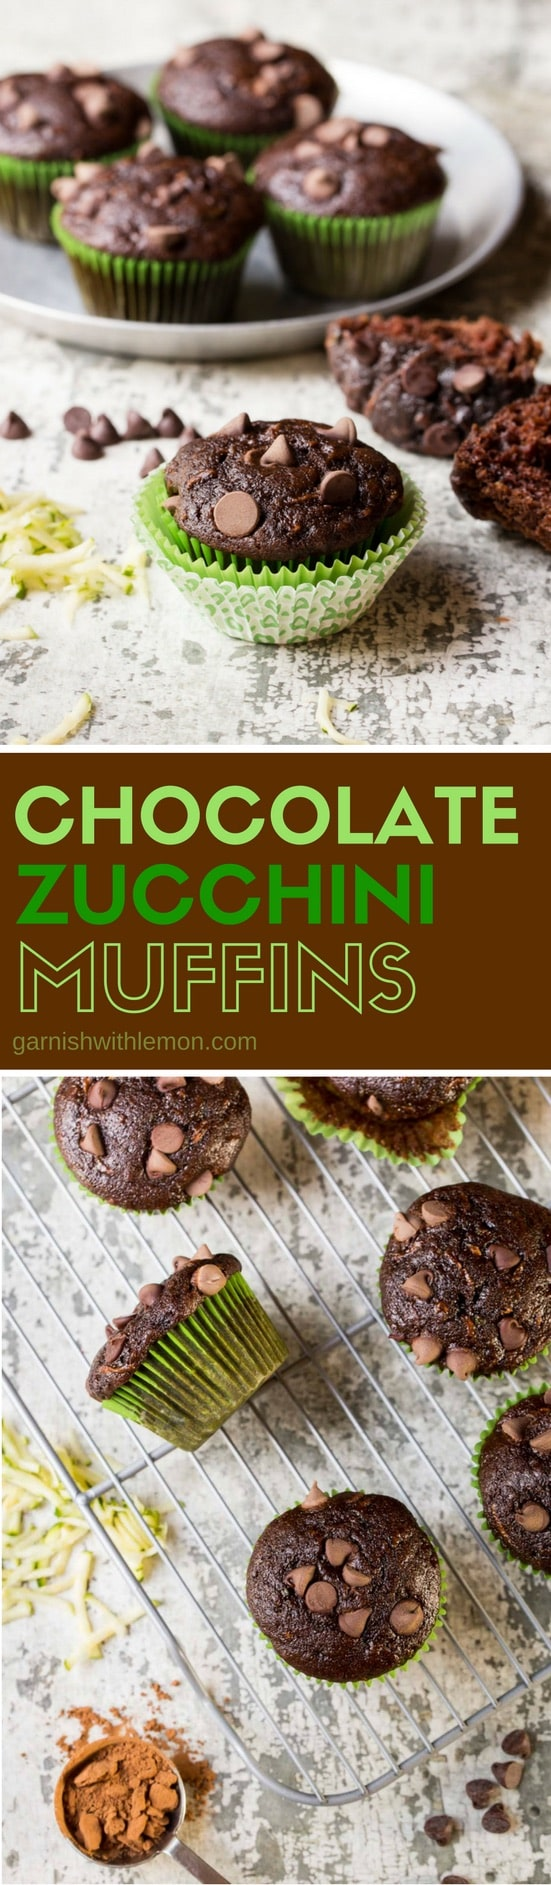 multiple chocolate muffins on plates and cooling racks.